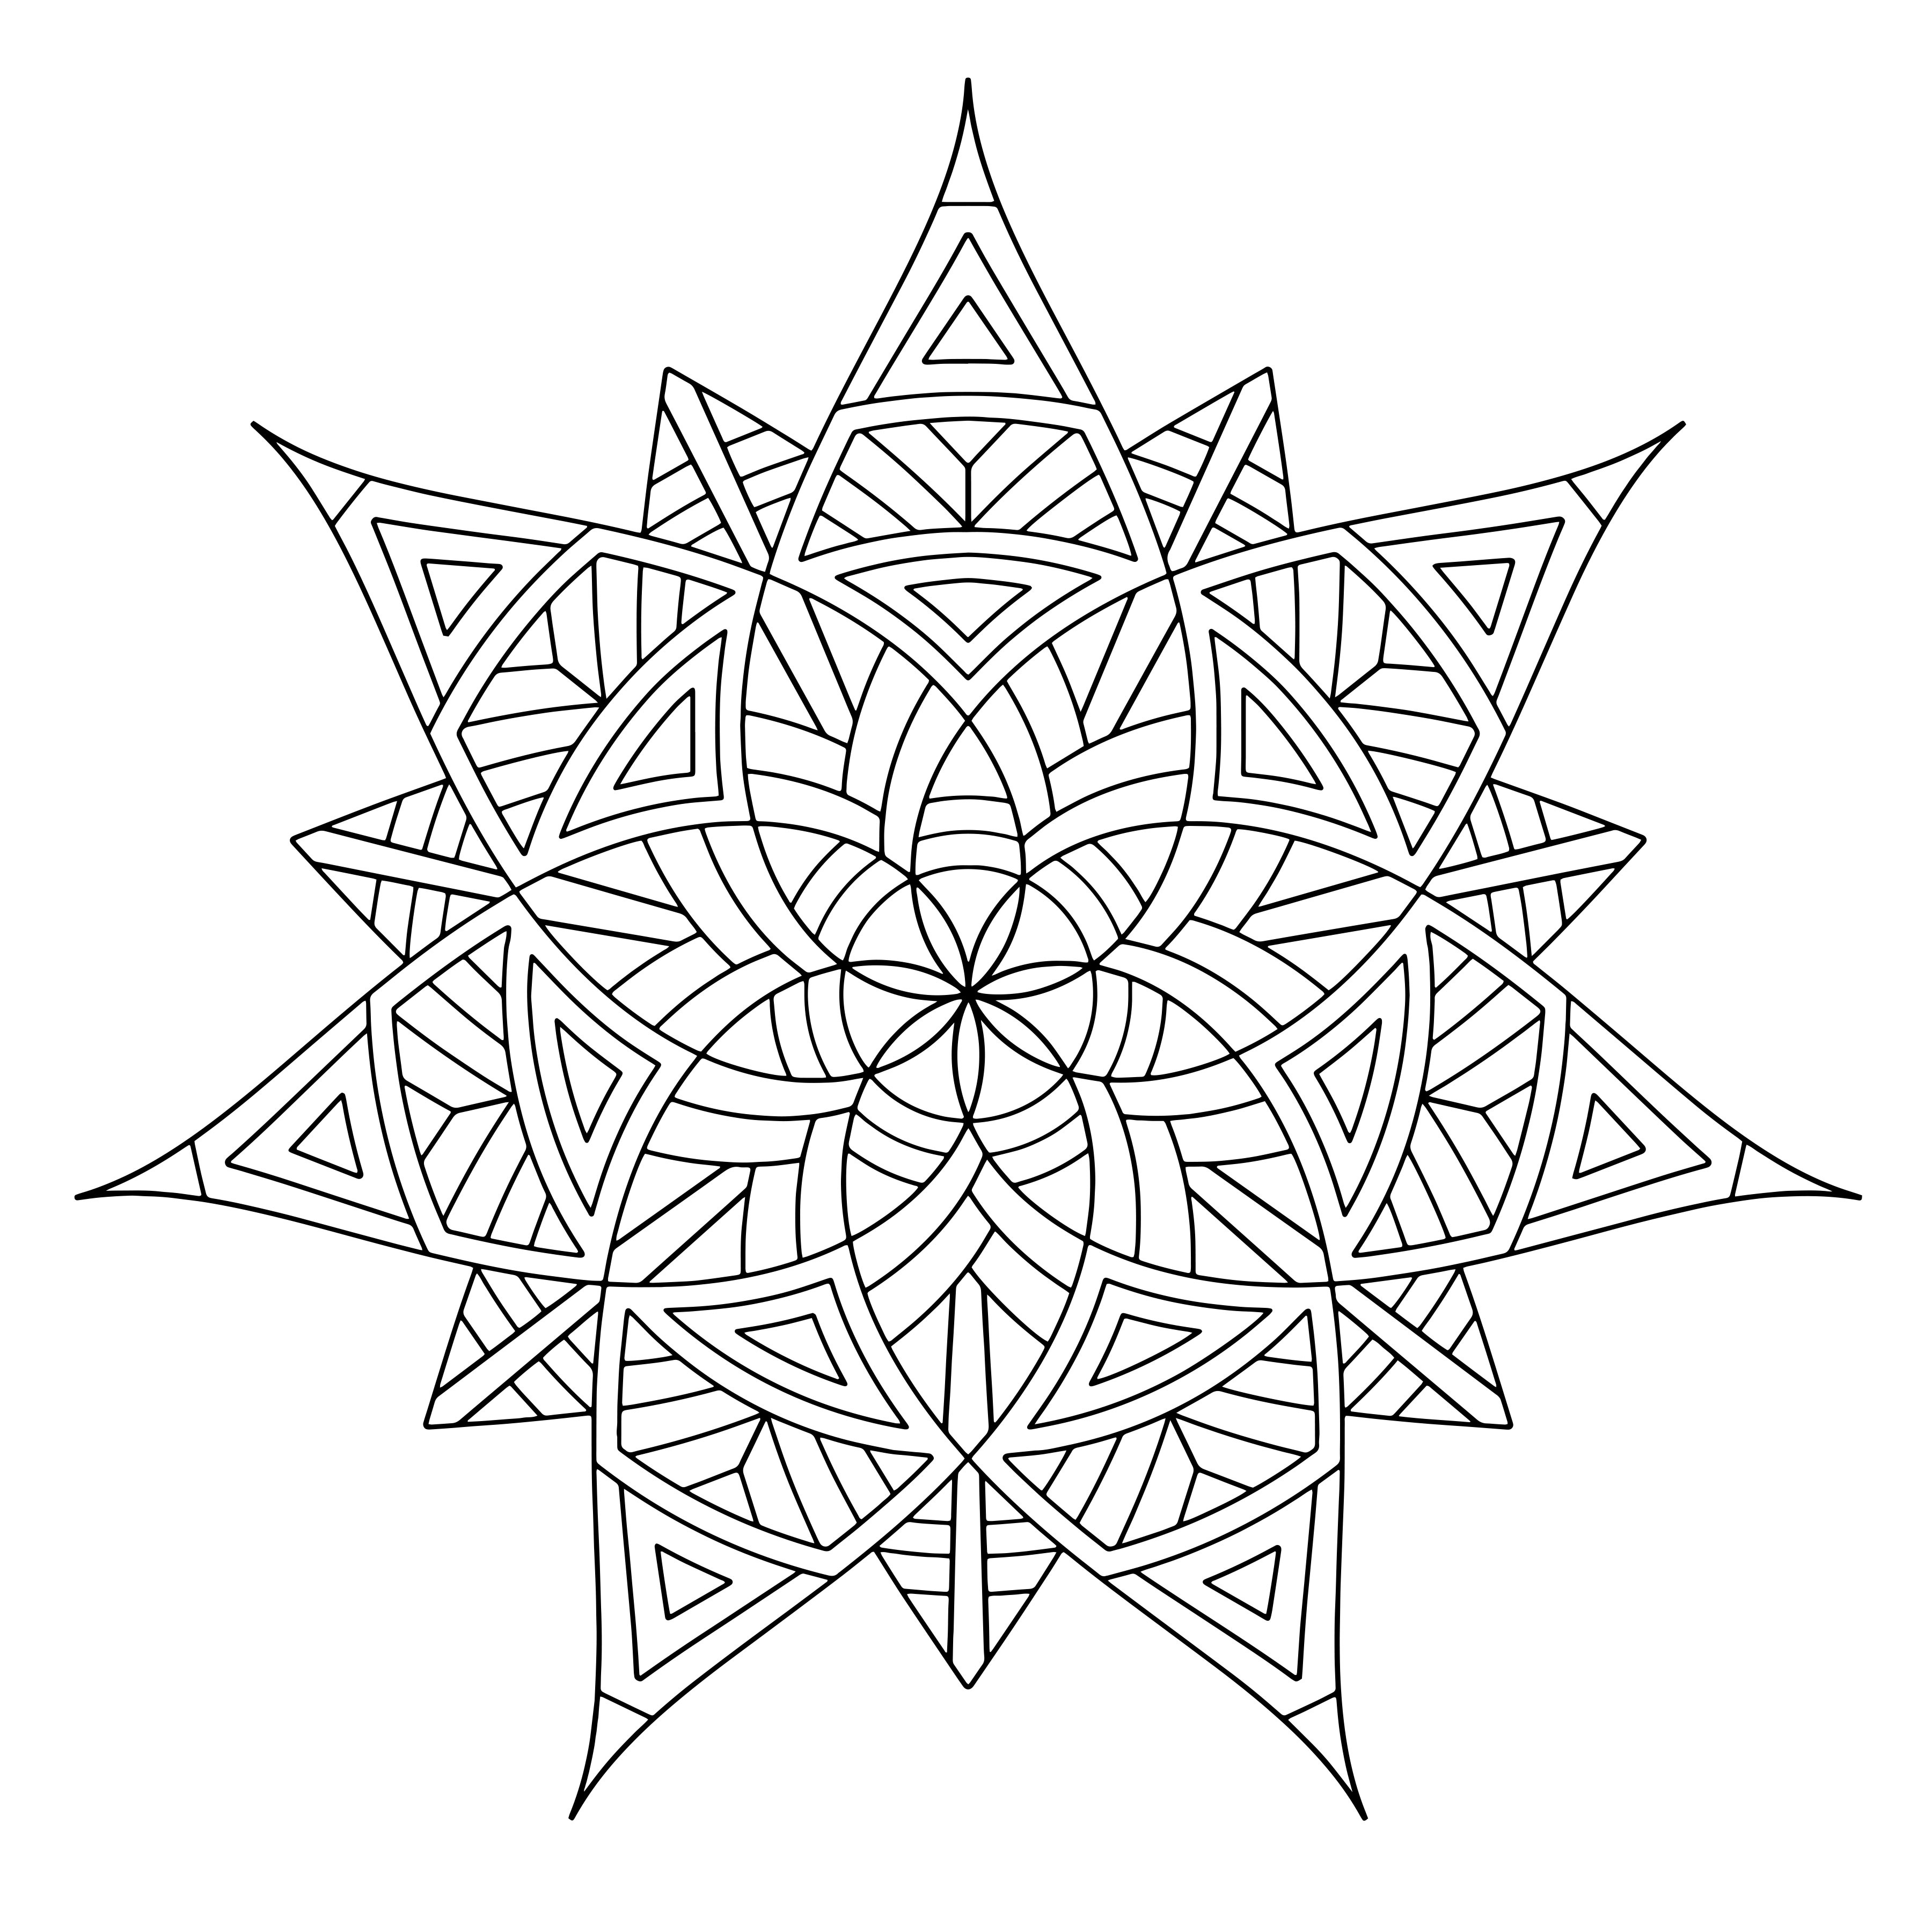 pattern coloring pages for adults free printable geometric coloring pages for adults adults coloring pages pattern for